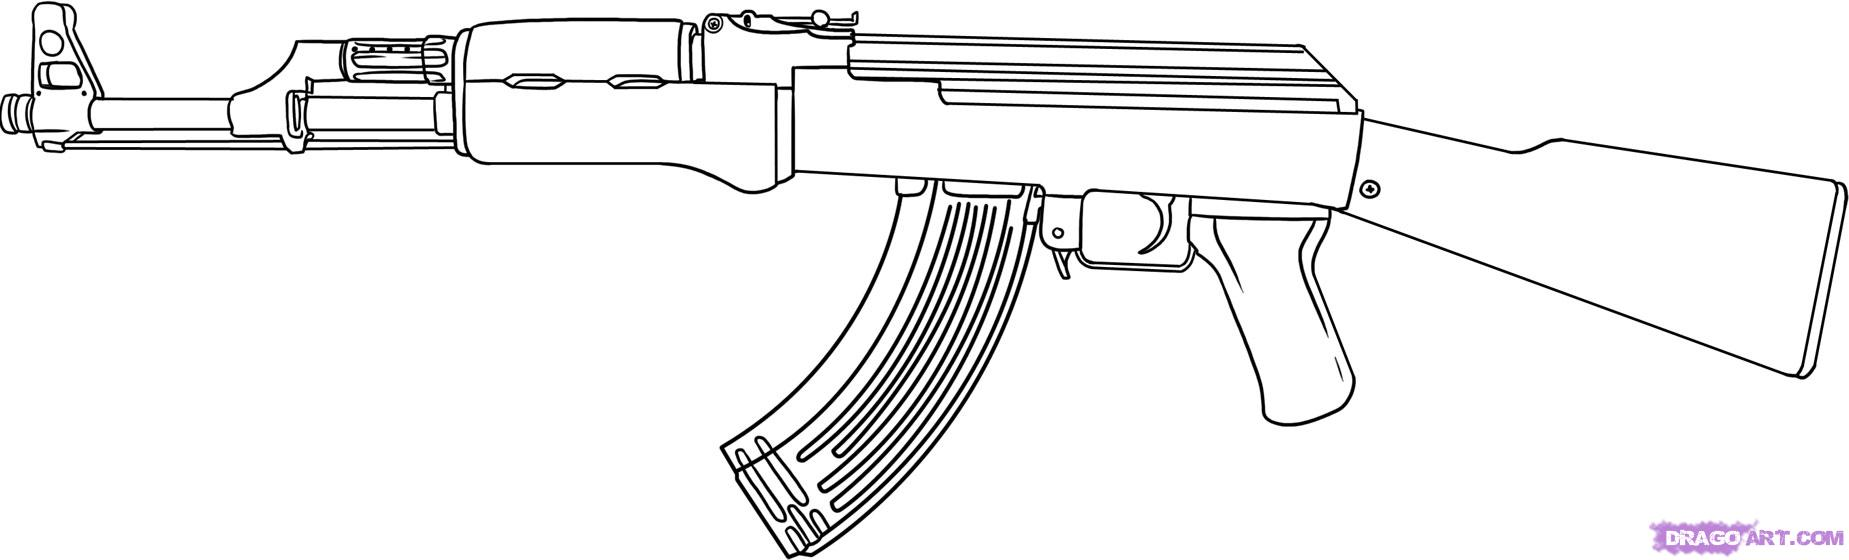 1849x560 Good Eedcfbee On Gun Coloring Pages On With Hd Resolution